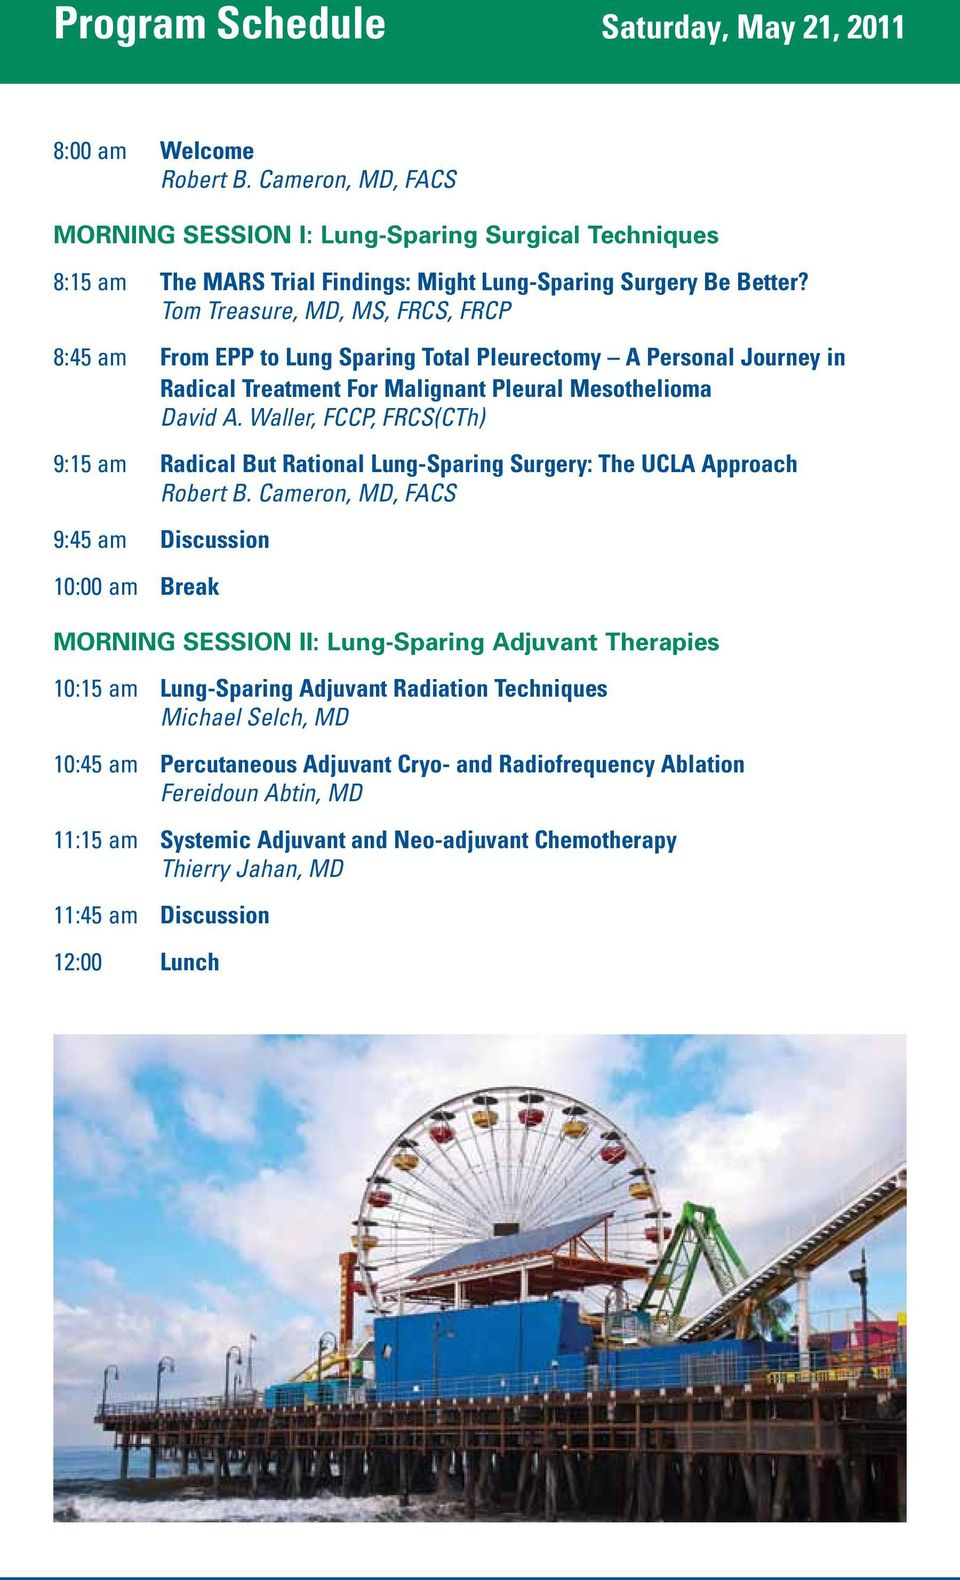 Waller, FCCP, FRCS(CTh) 9:15 am Radical But Rational Lung-Sparing Surgery: The UCLA Approach 9:45 am Discussion 10:00 am Break MORNING SESSION II: Lung-Sparing Adjuvant Therapies 10:15 am